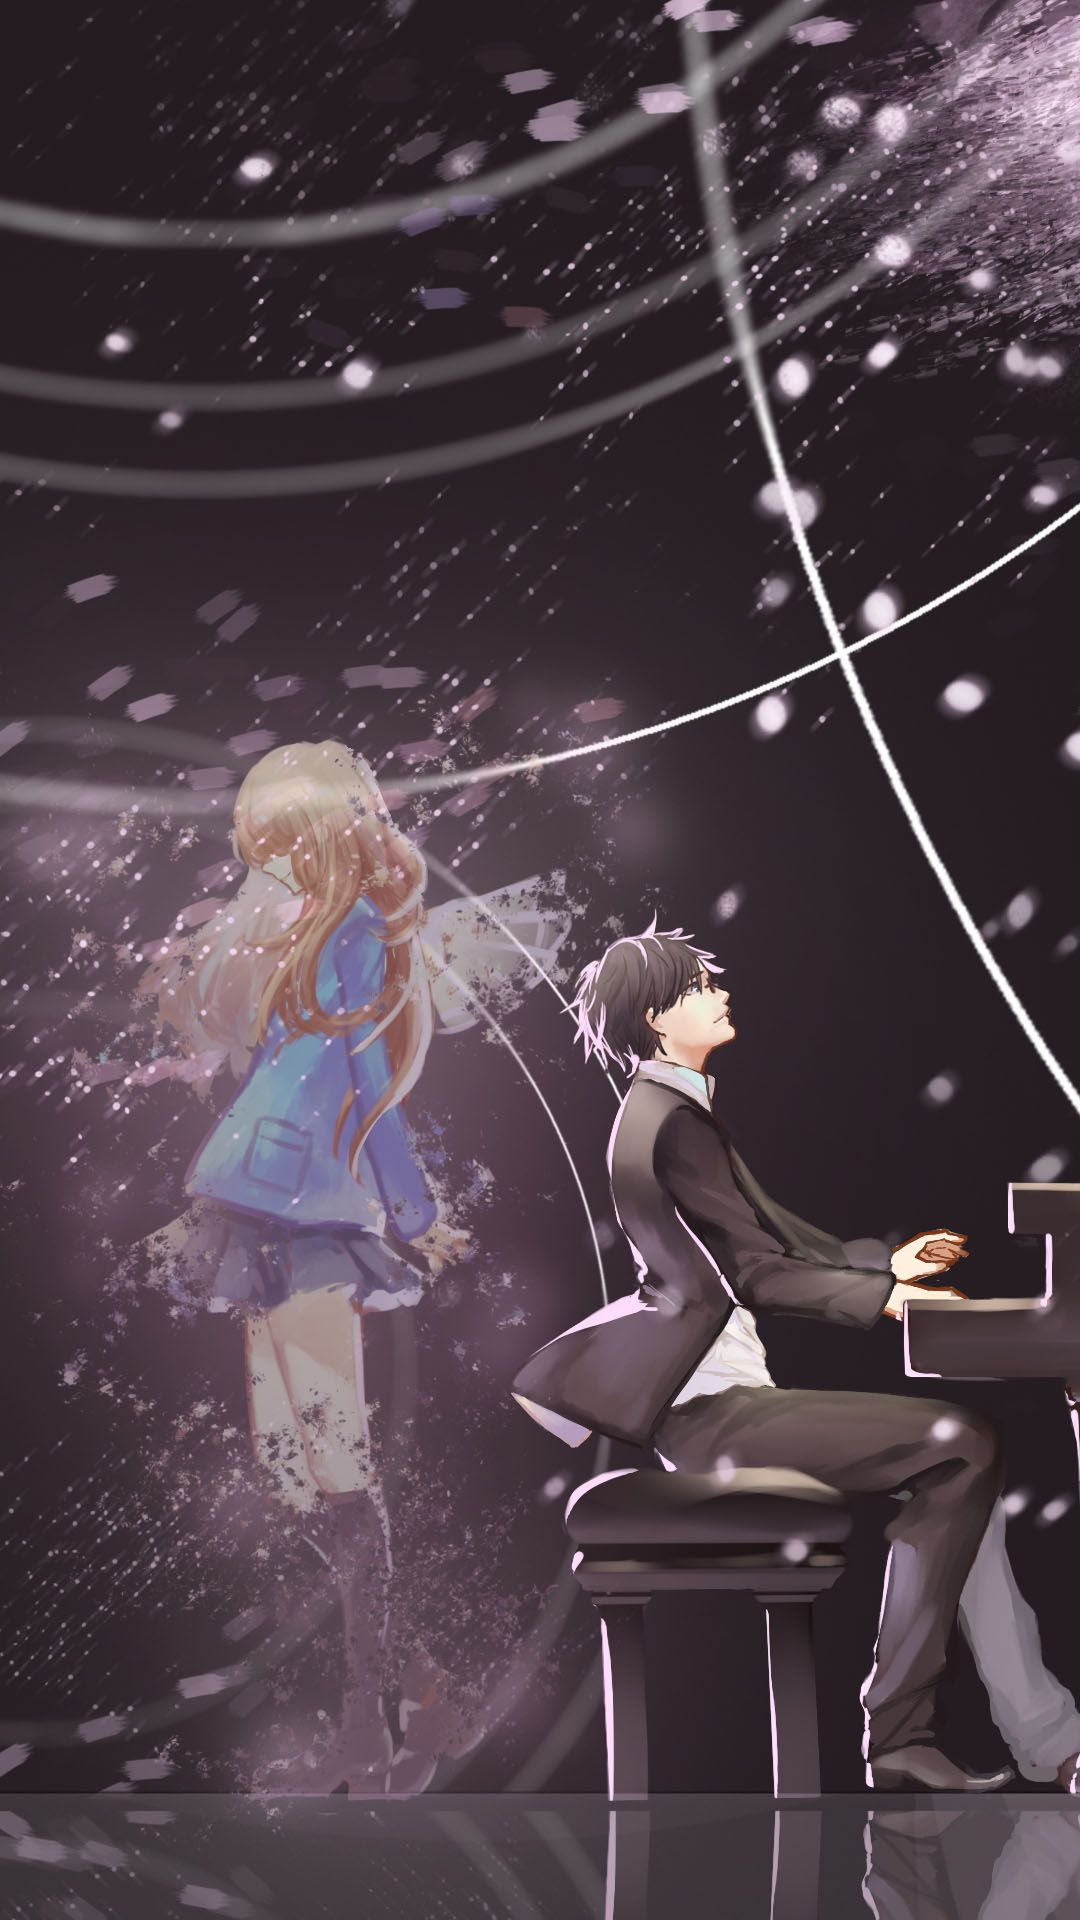 Anime Wallpapers Your Lie In April Romantic Anime Anime Romance